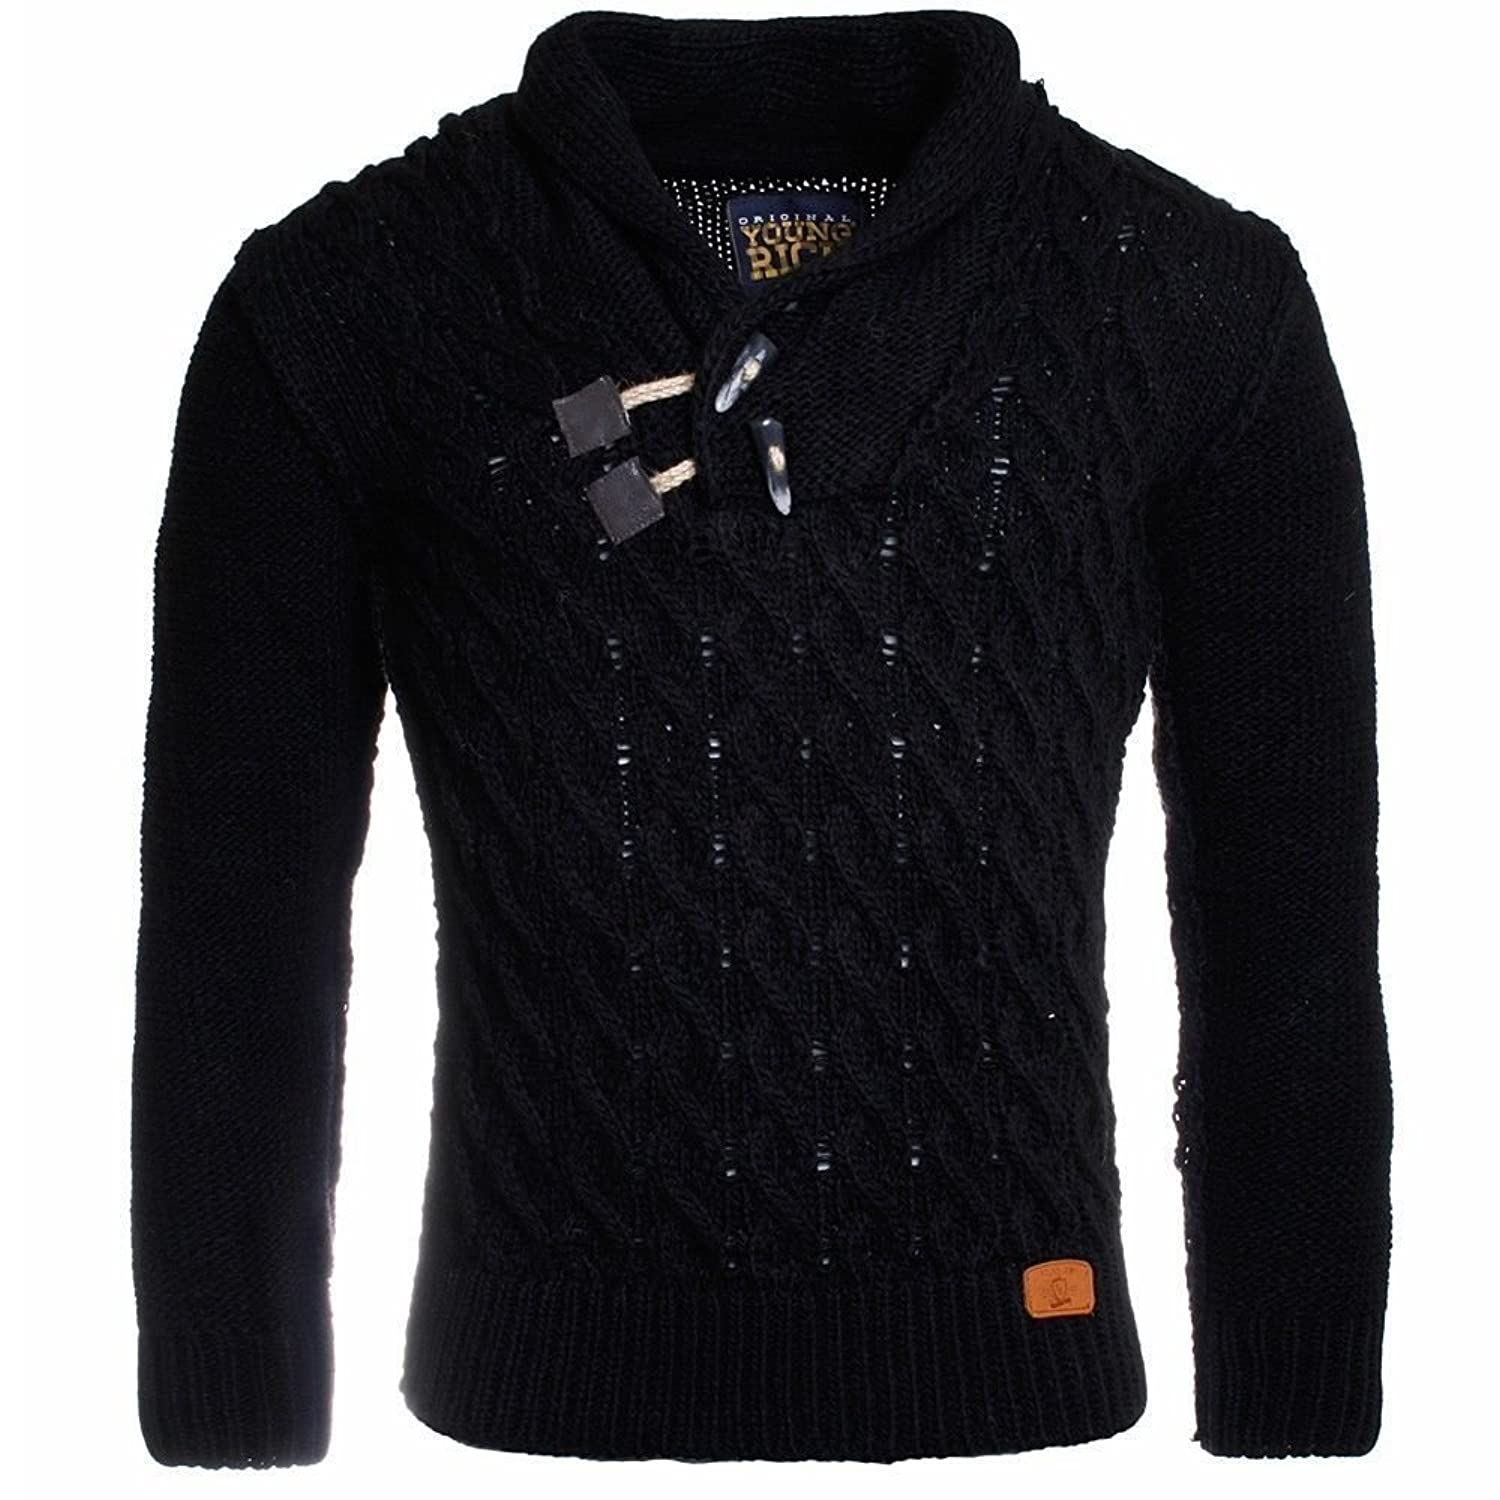 Young & Reach Men's Knitted Warm Sweater / Pullover